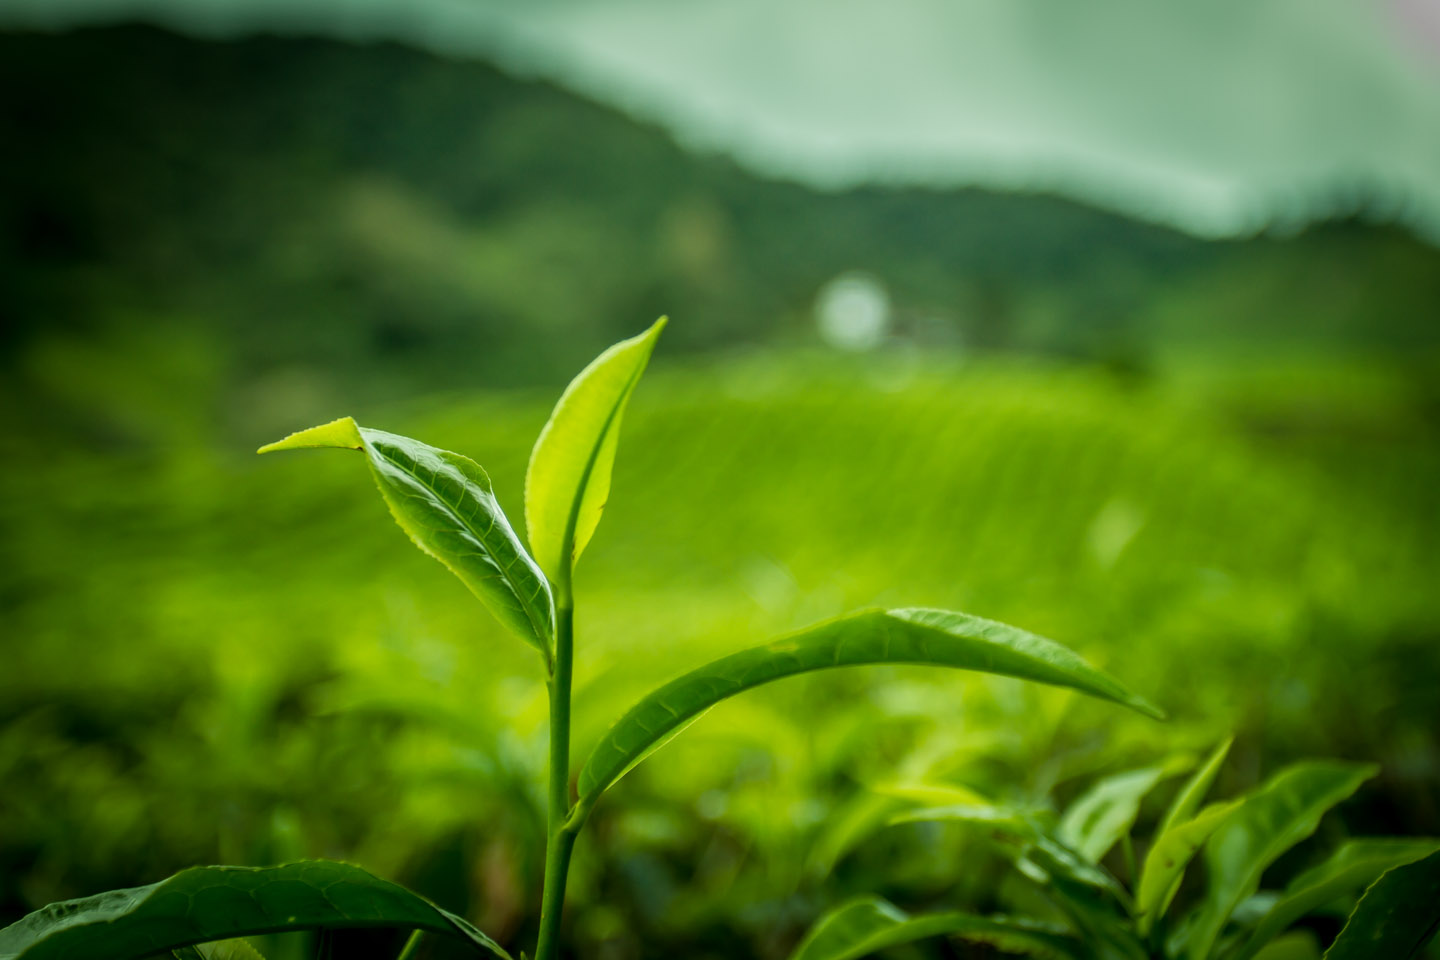 Tea plant growing at Cameron Highlands Malaysia